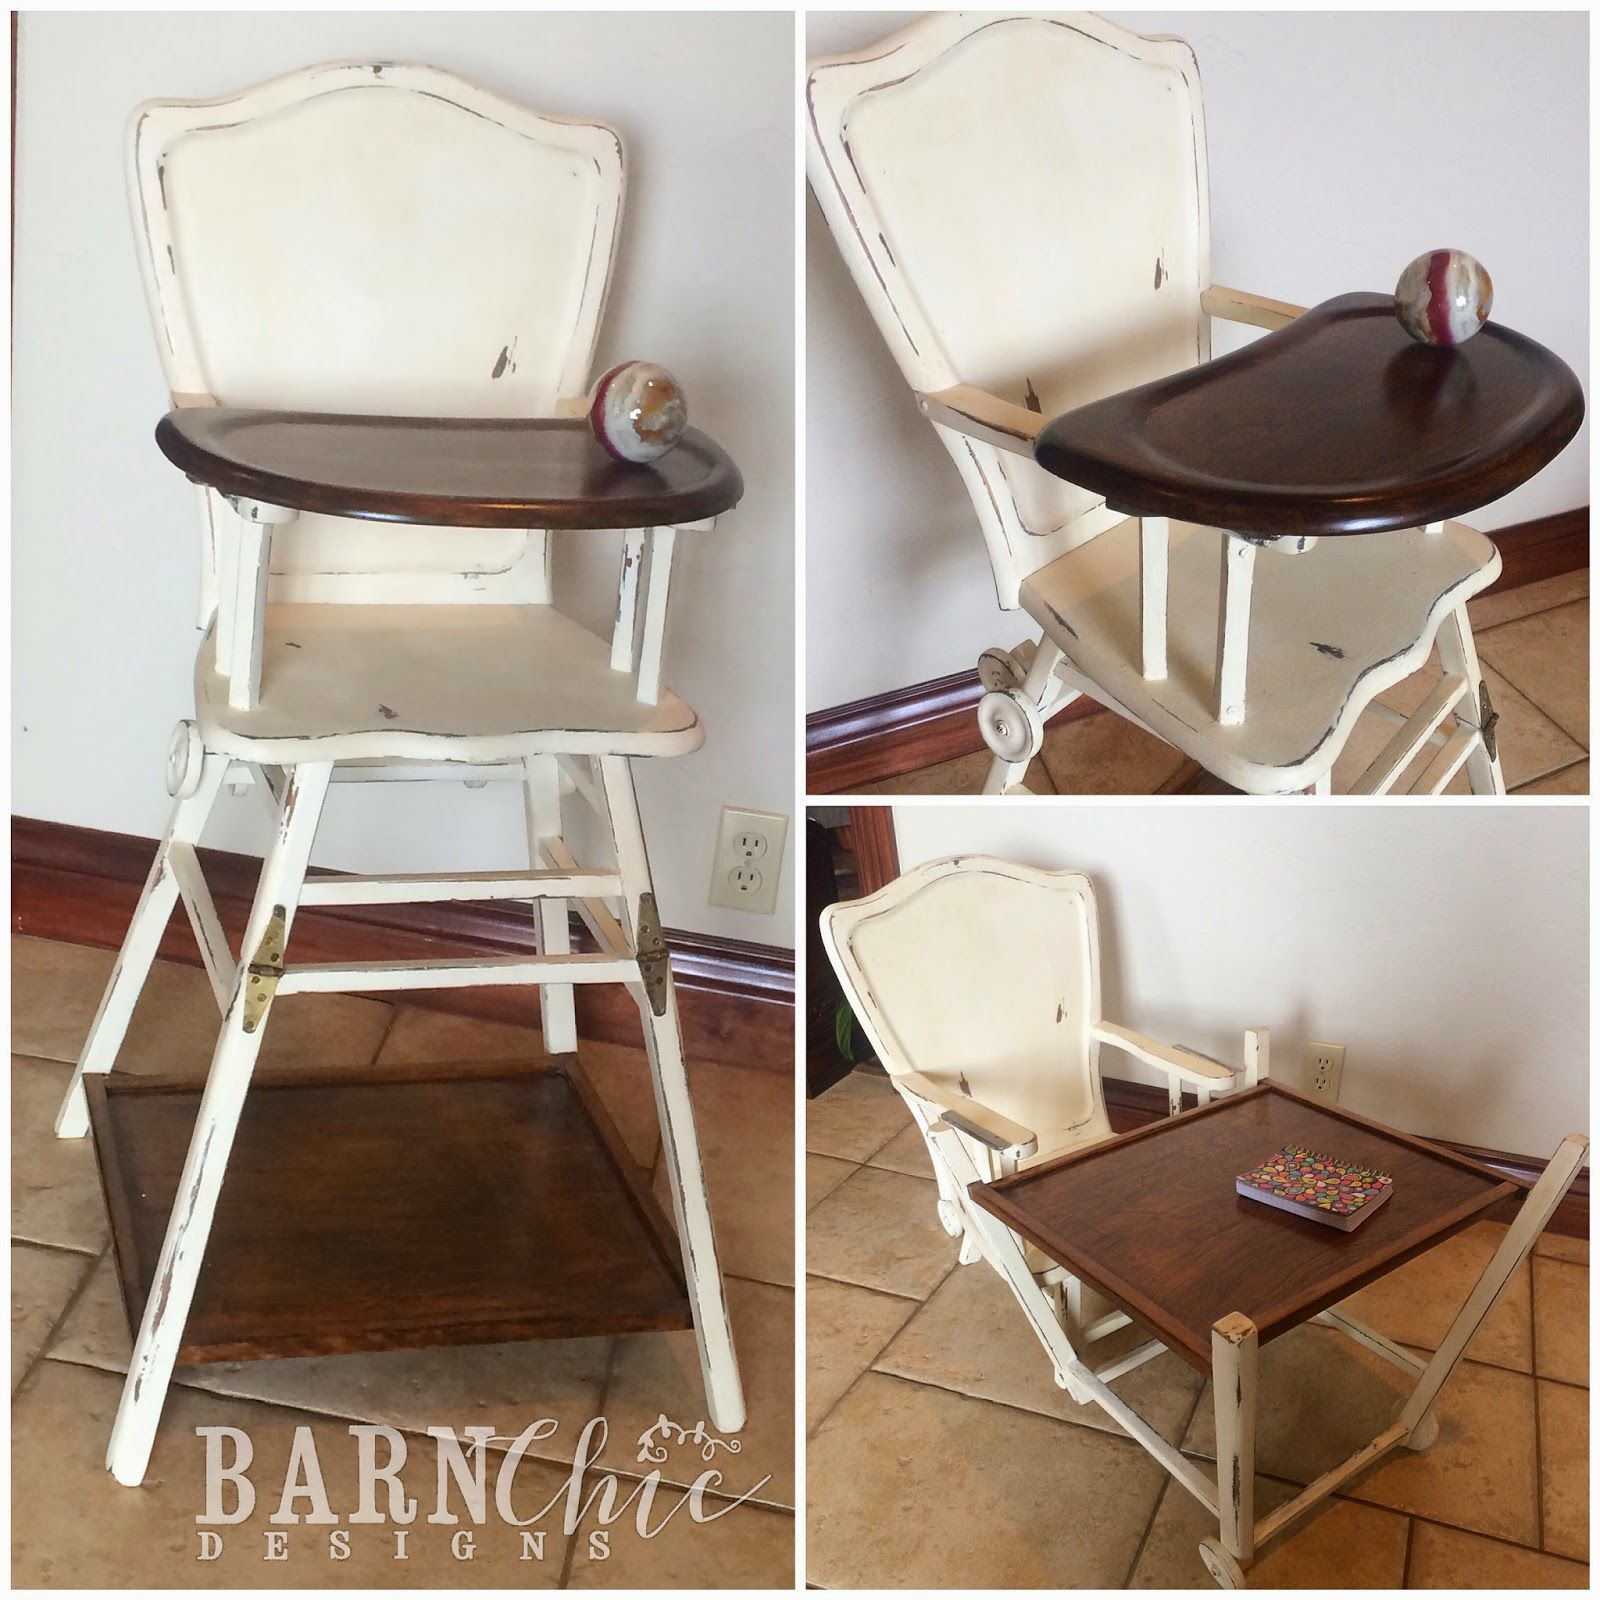 Painted wood high chair - Refinished Antique Old Wooden High Chair By Barn Chic Designs Two Toned Refurbished High Chair In Dark Walnut Stain And Annie Sloan Chalk Paint